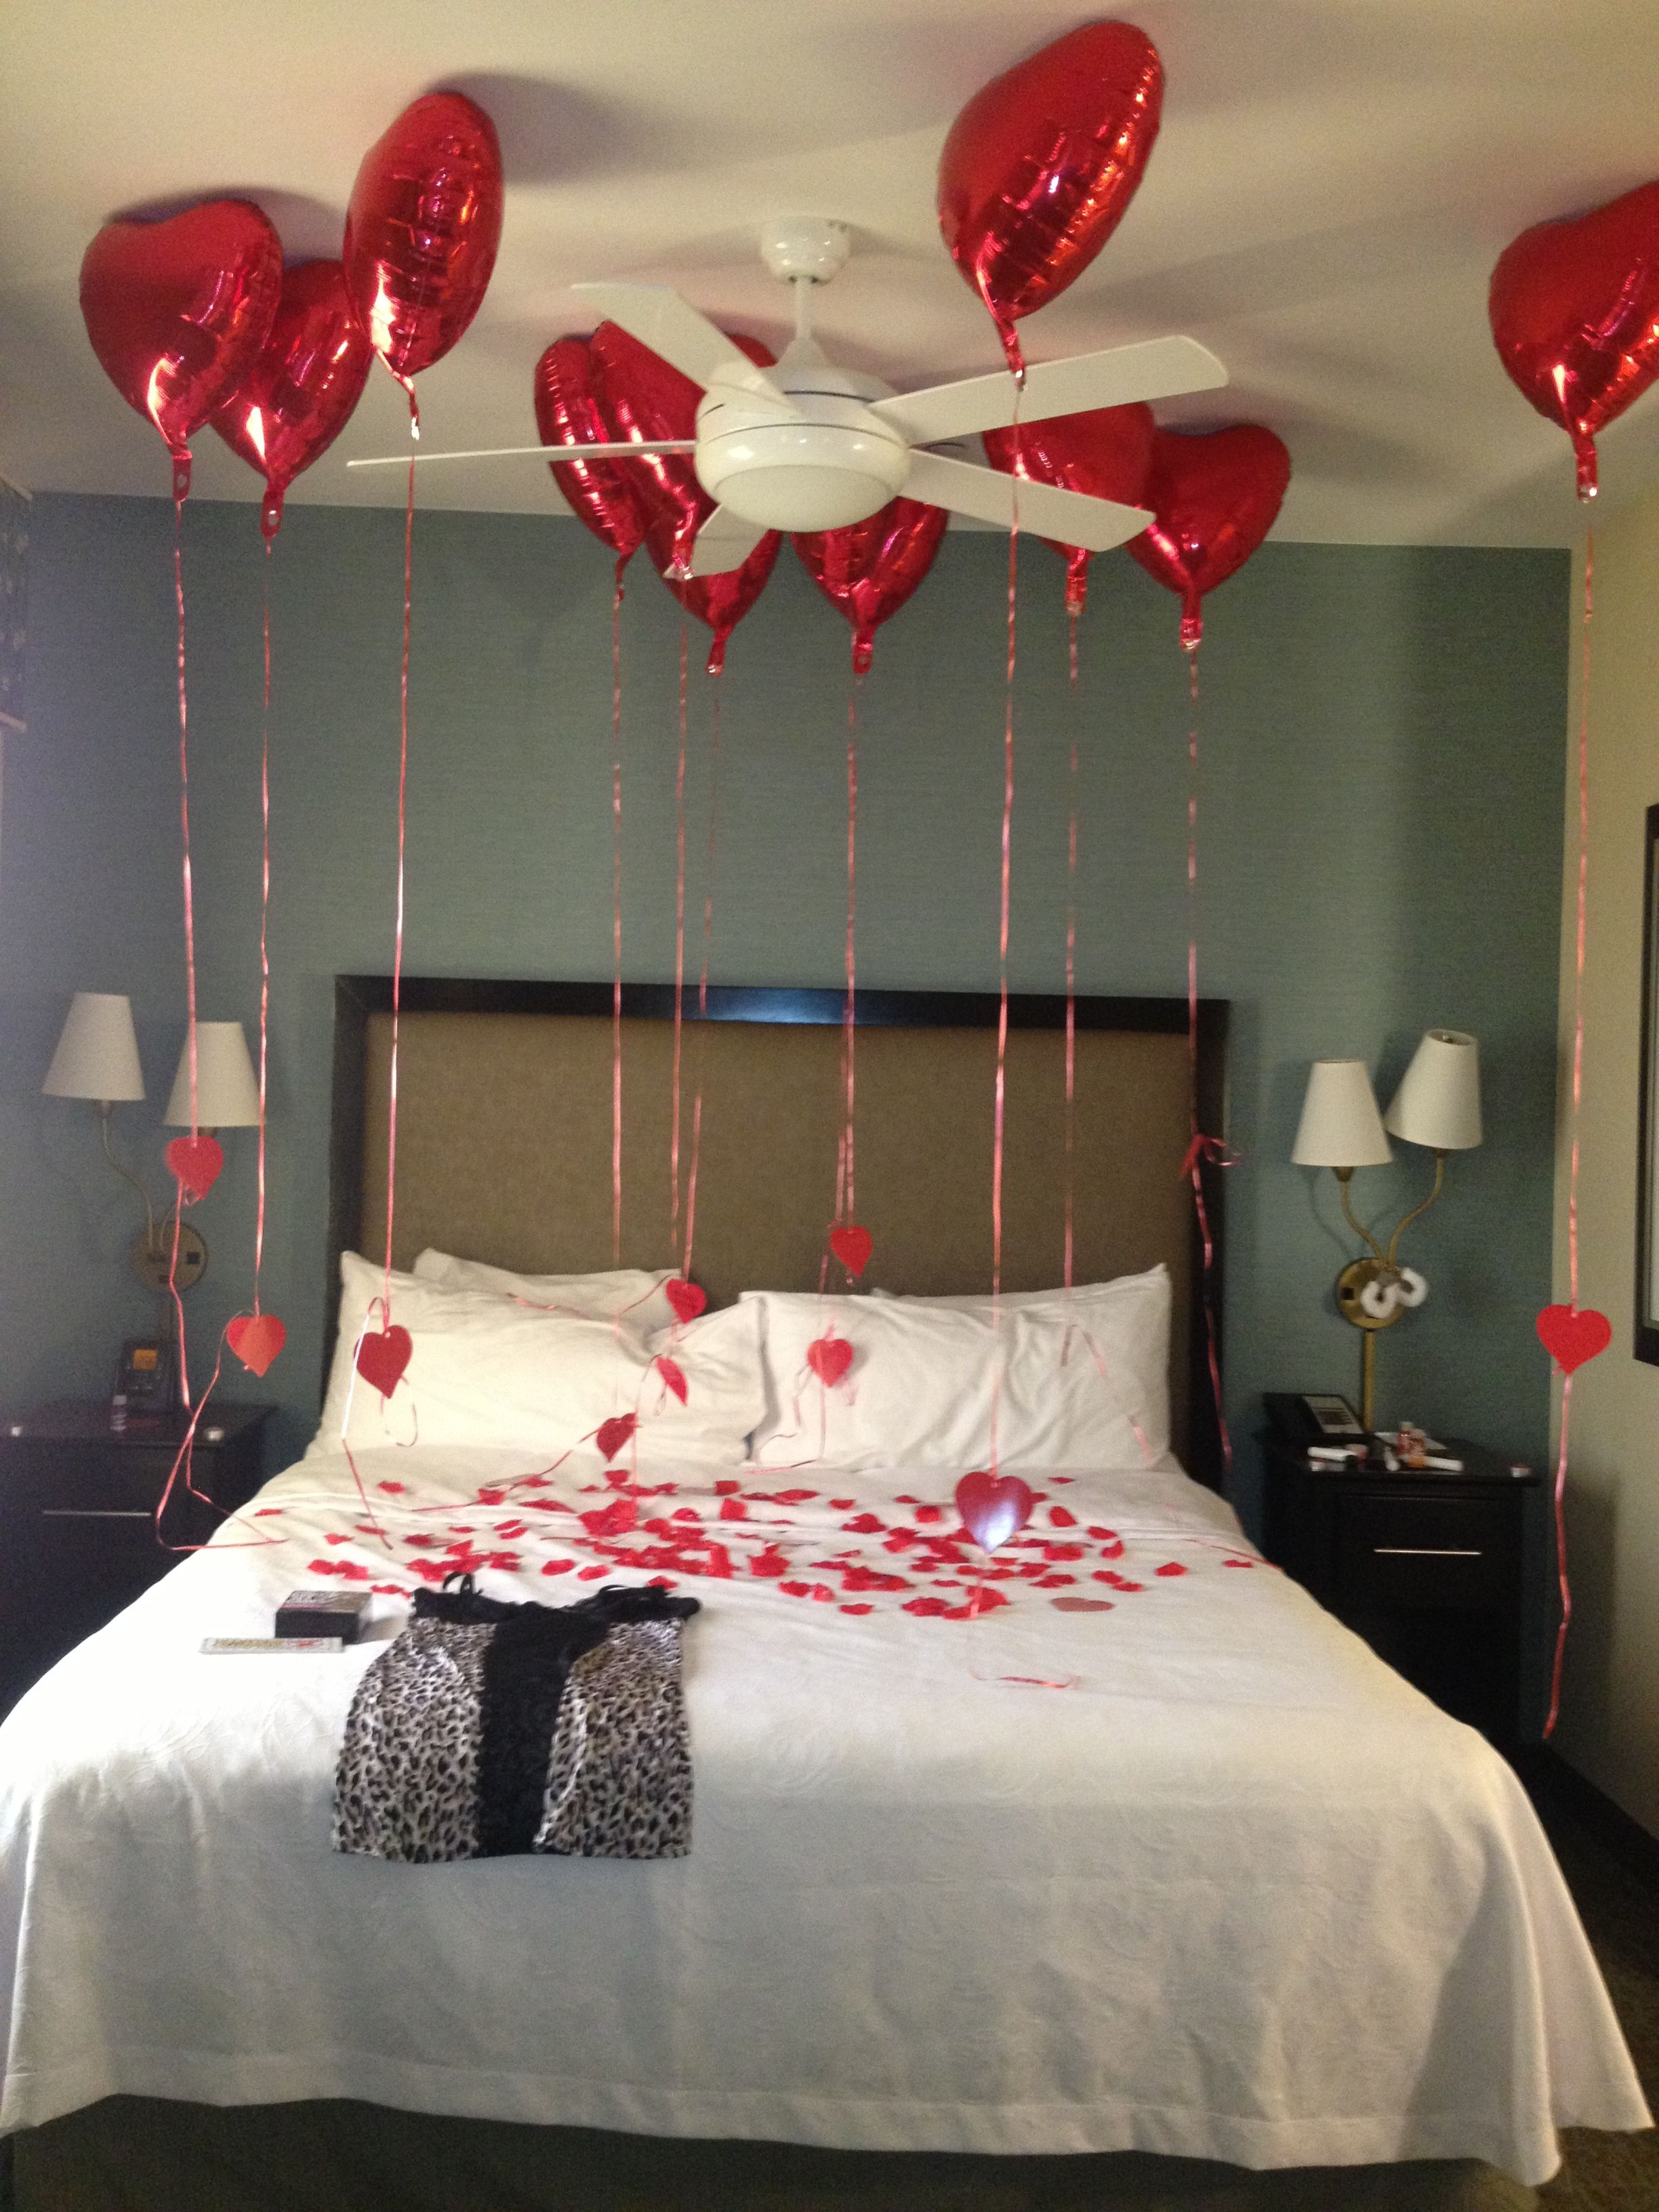 Valentines surprise hotel room for boyfriend or hubby. He ...